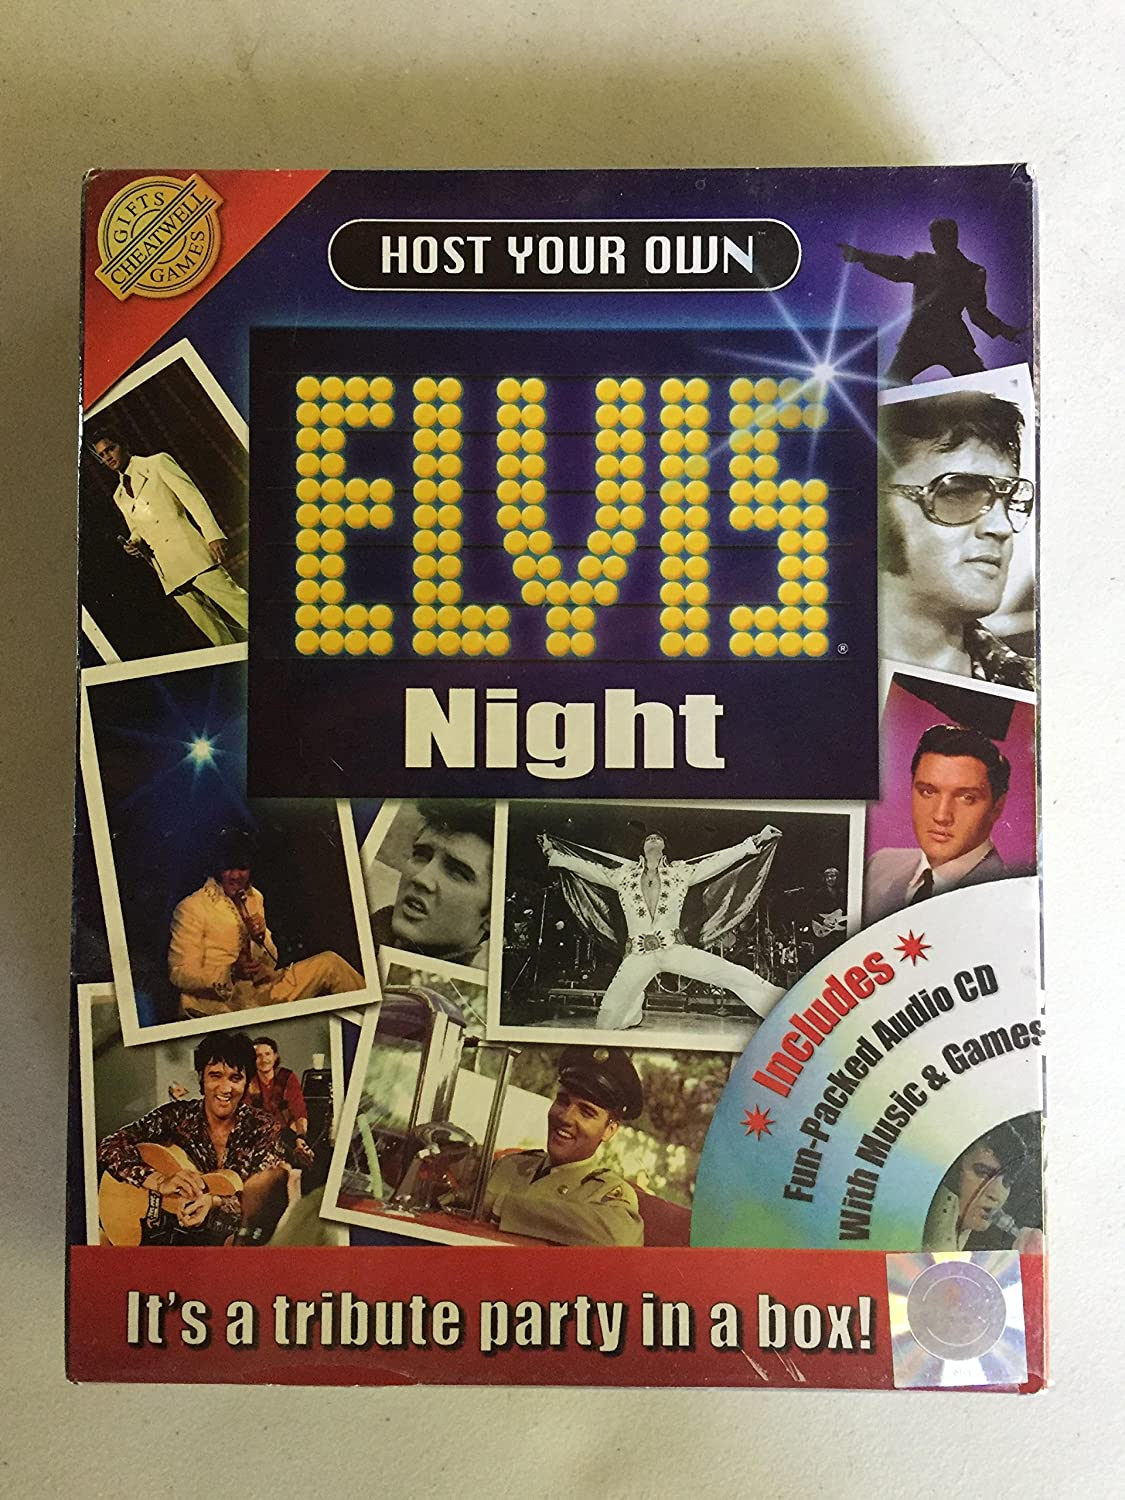 Host your own elvis night tribute party kit by Unknown (0100-01-01)